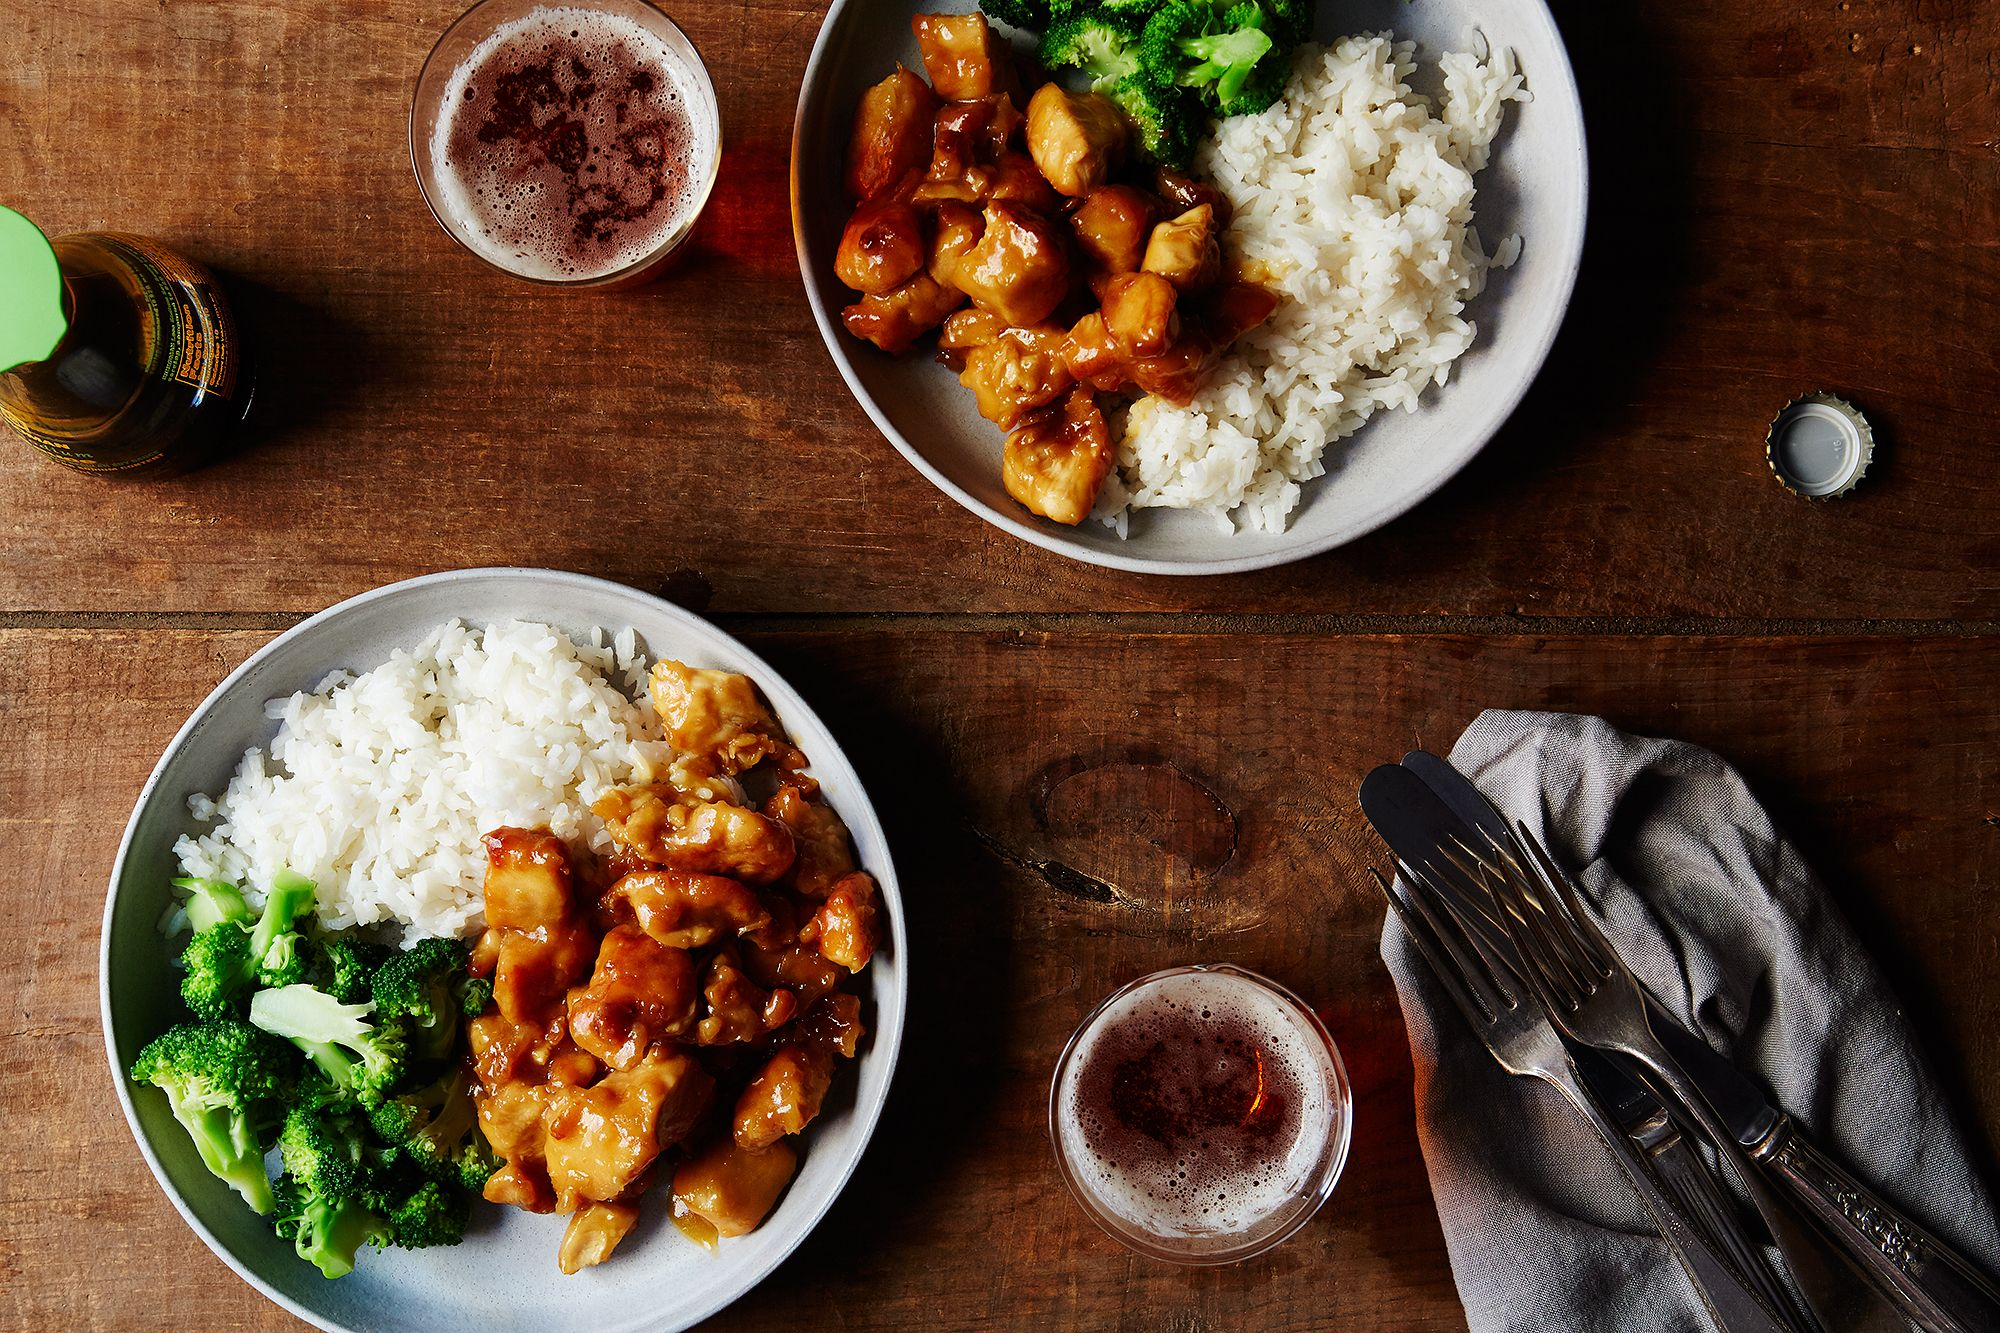 Homemade takeout panda express style orange chicken recipe for What makes a kitchen kosher